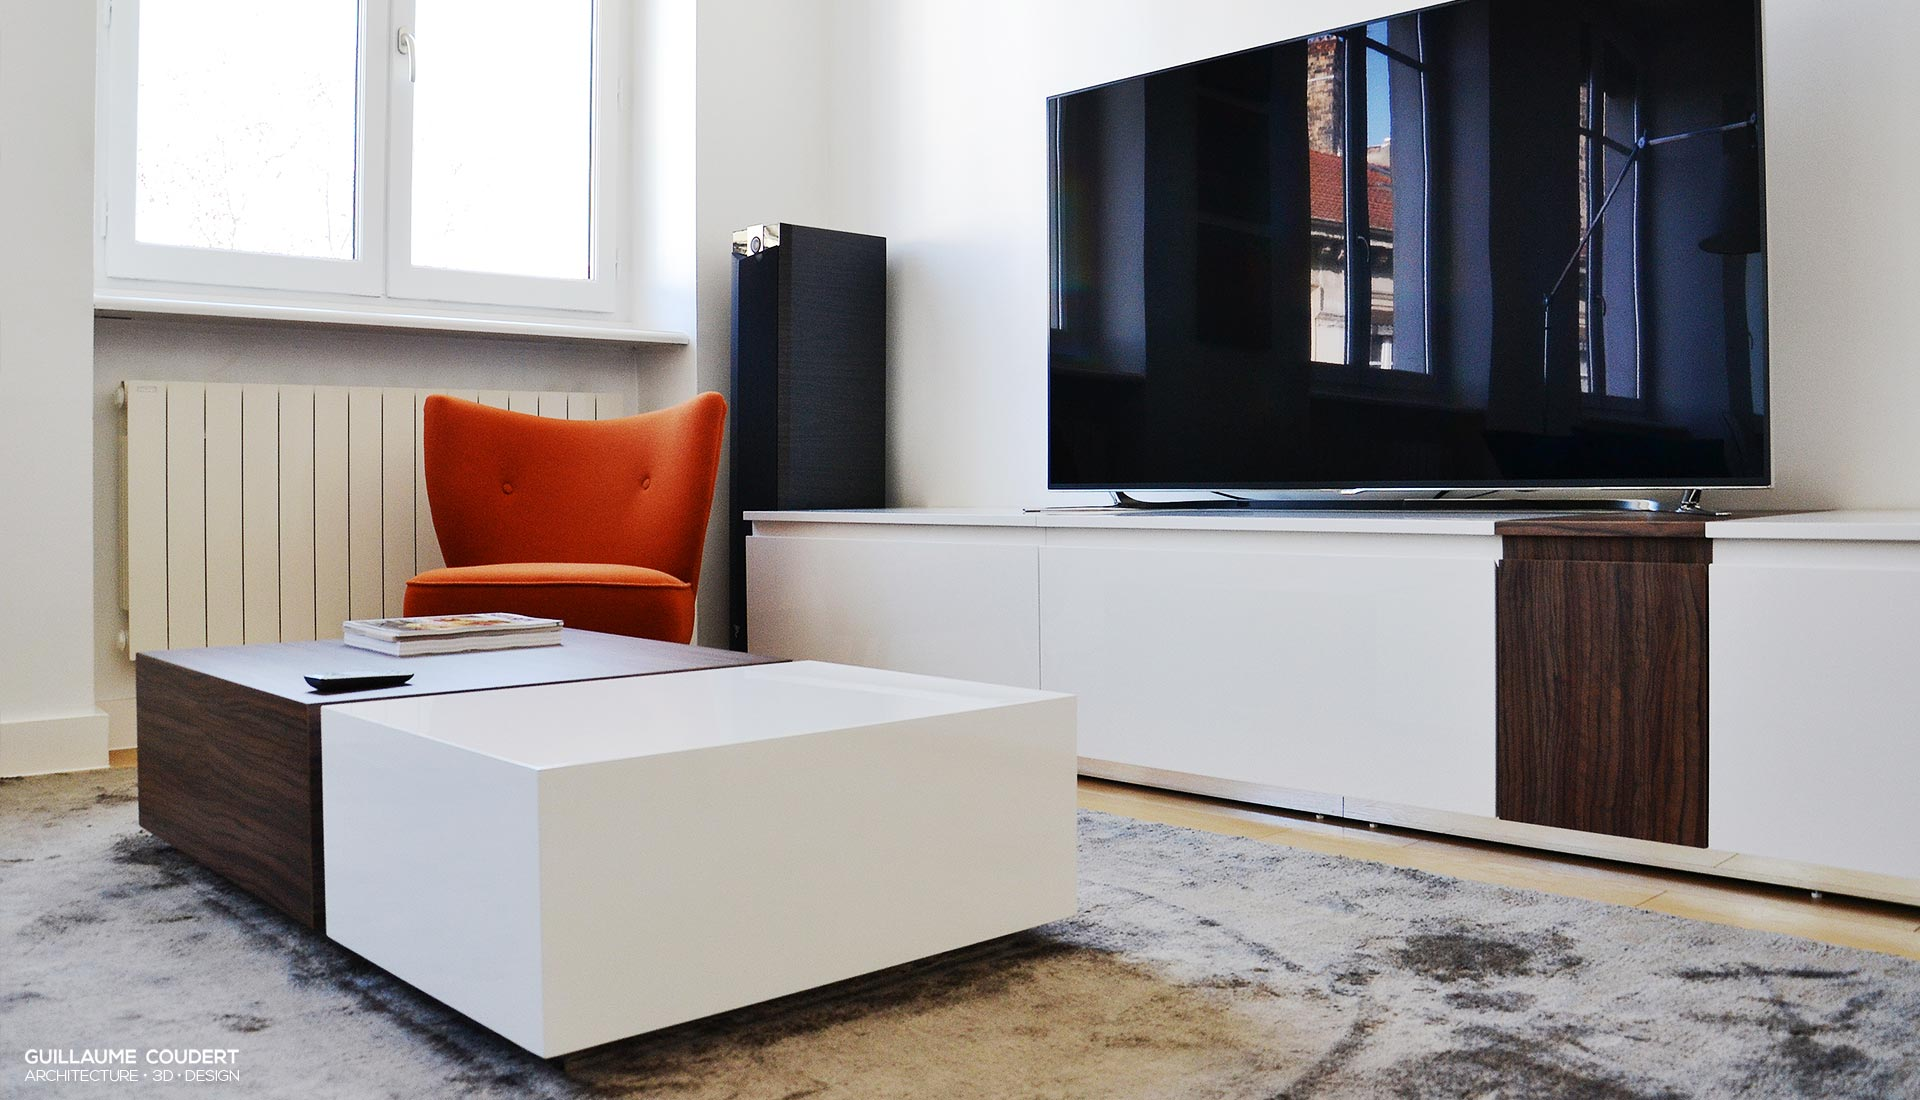 Meuble Tv Guillaume Coudert Architecture D Int Rieur # Mesure Table Tv